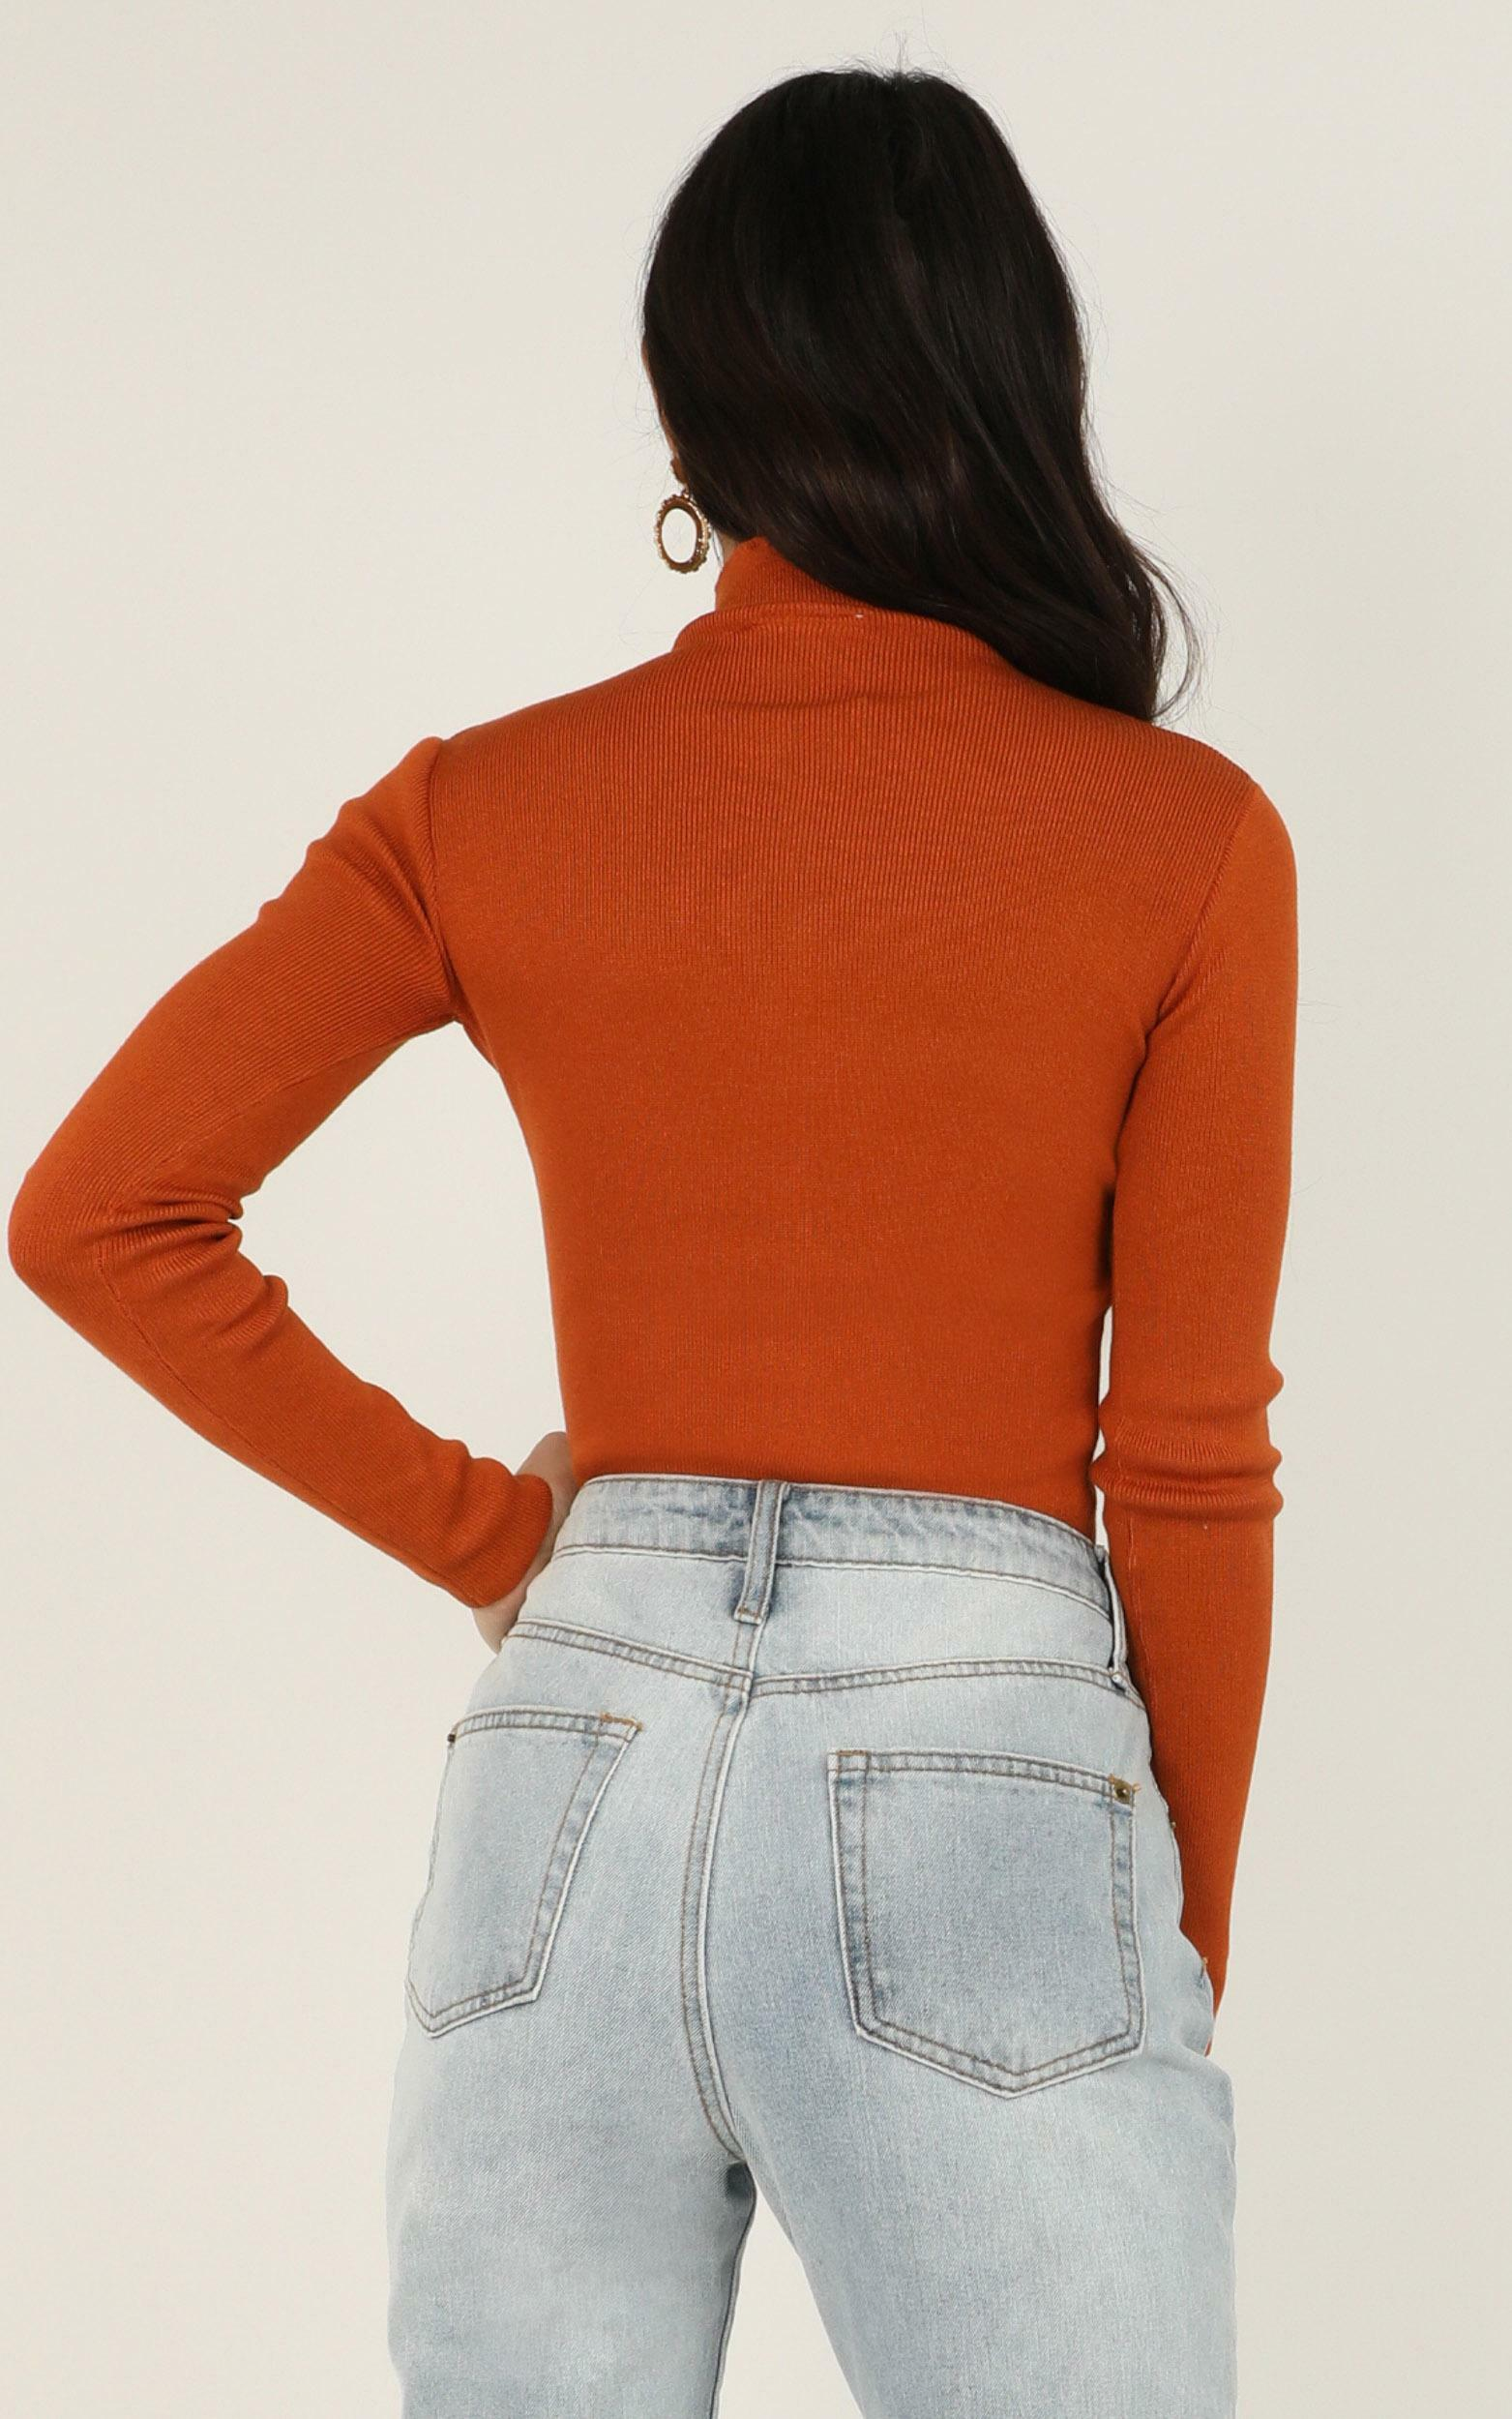 Lust For Life Knit Top In rust - 6 (XS), Rust, hi-res image number null